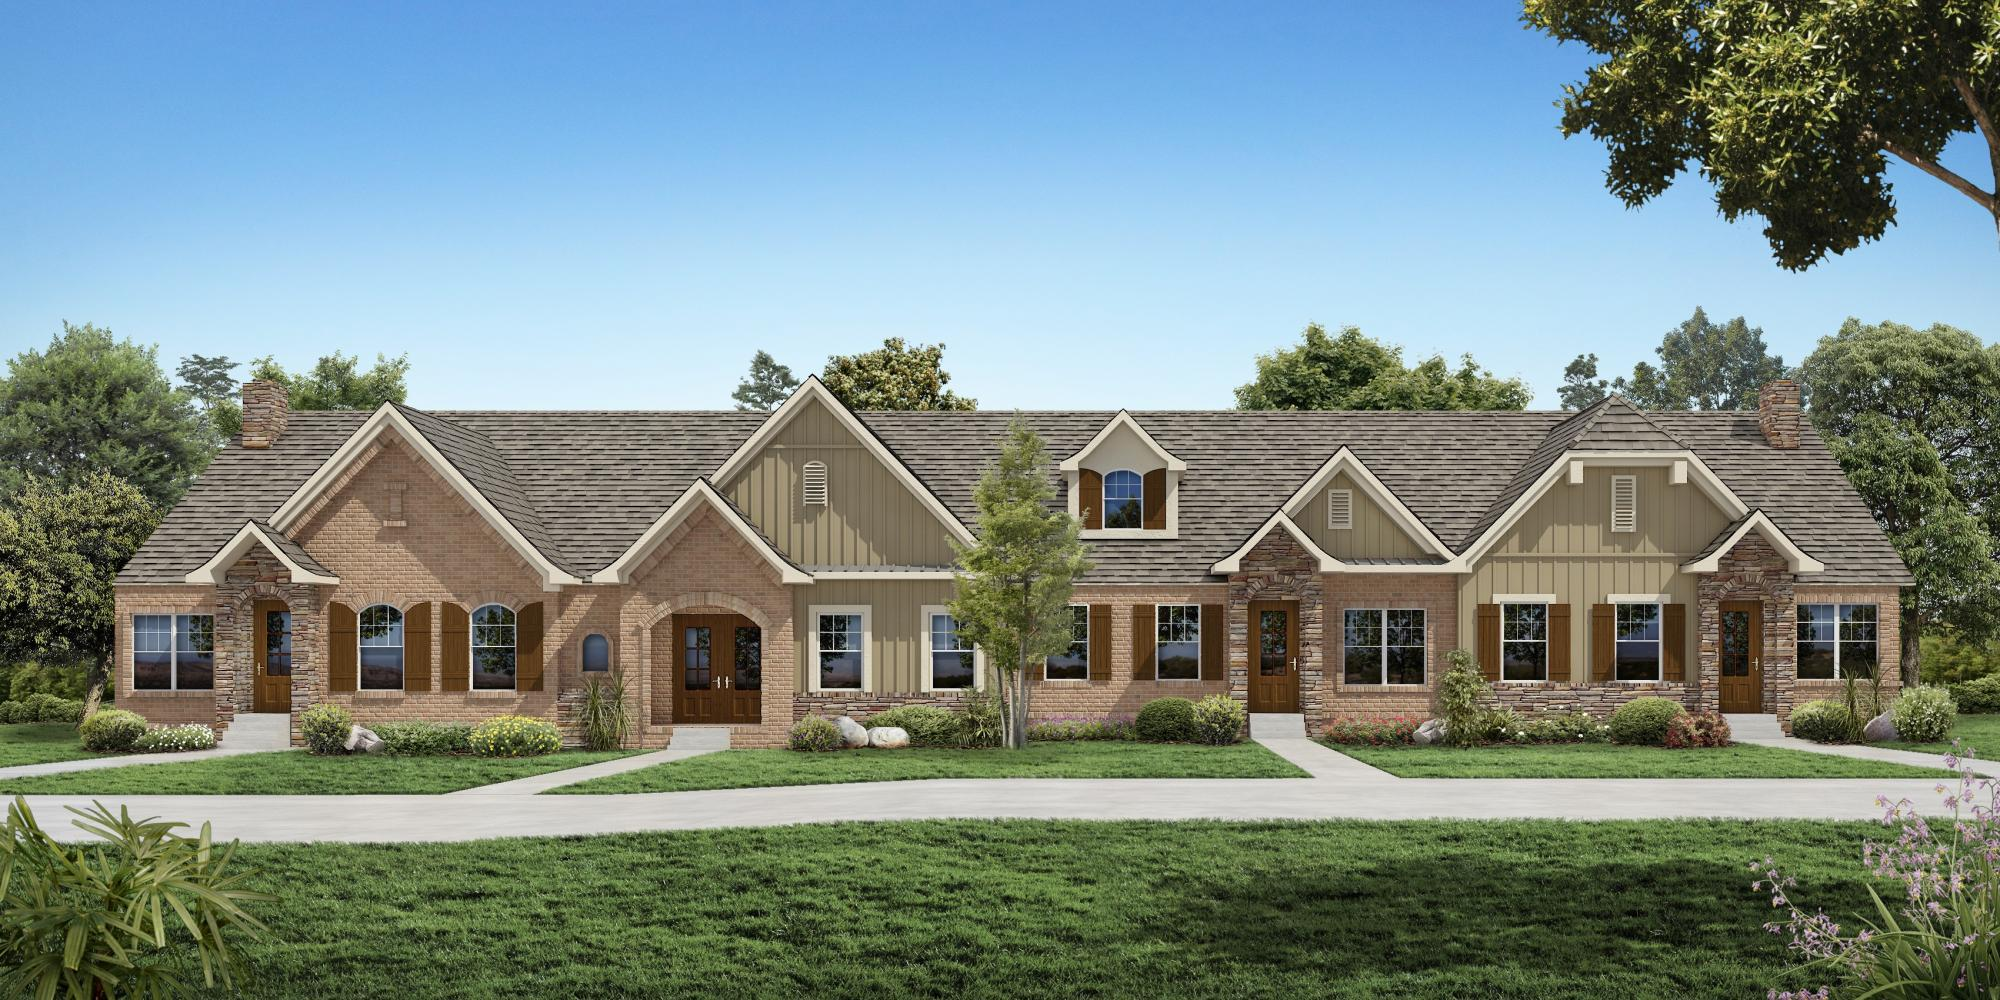 http://partners-dynamic.bdxcdn.com/Images/Homes/GoodallHomebuilder/max1500_27736669-190220.jpg